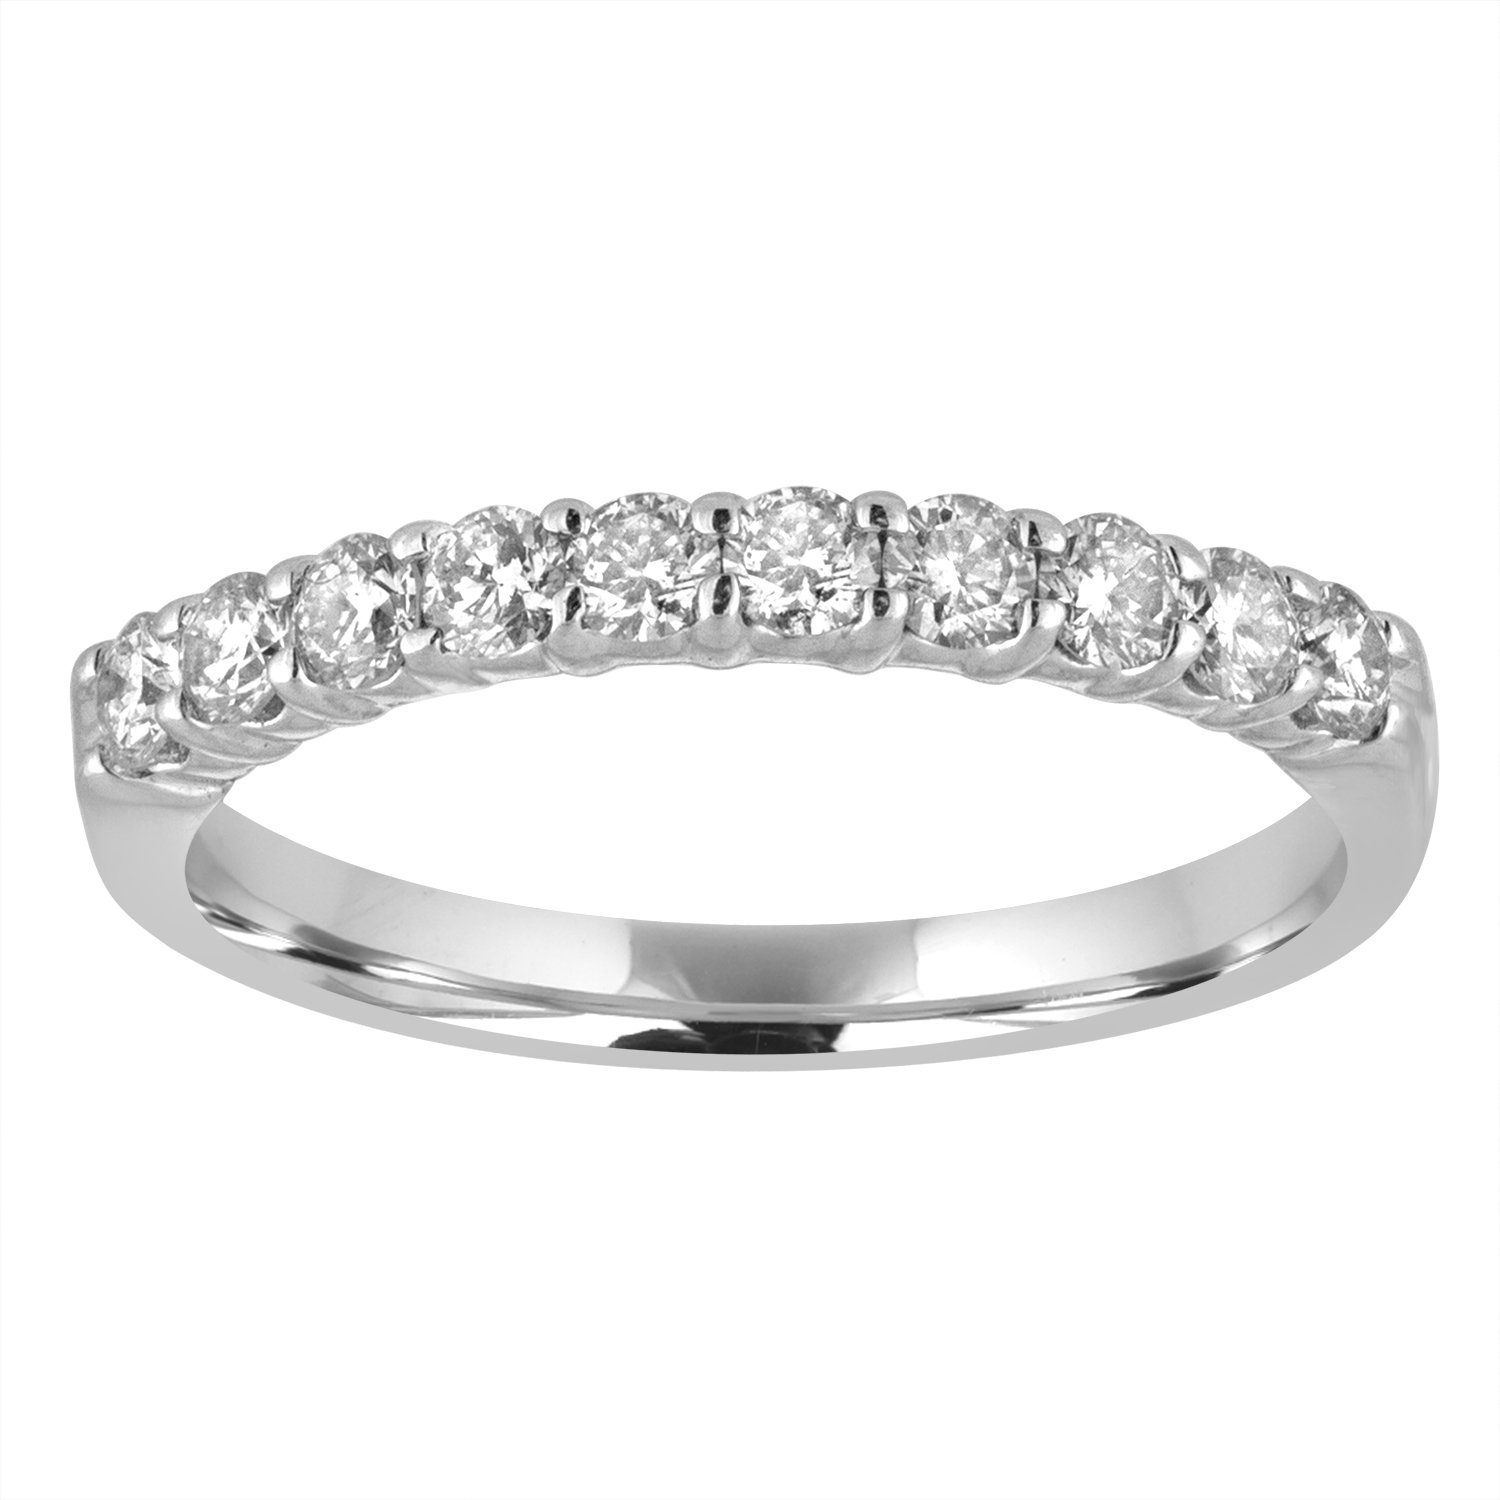 1/2 CT Diamond Wedding Band in 14K White Gold Size 6.5 by Vir Jewels